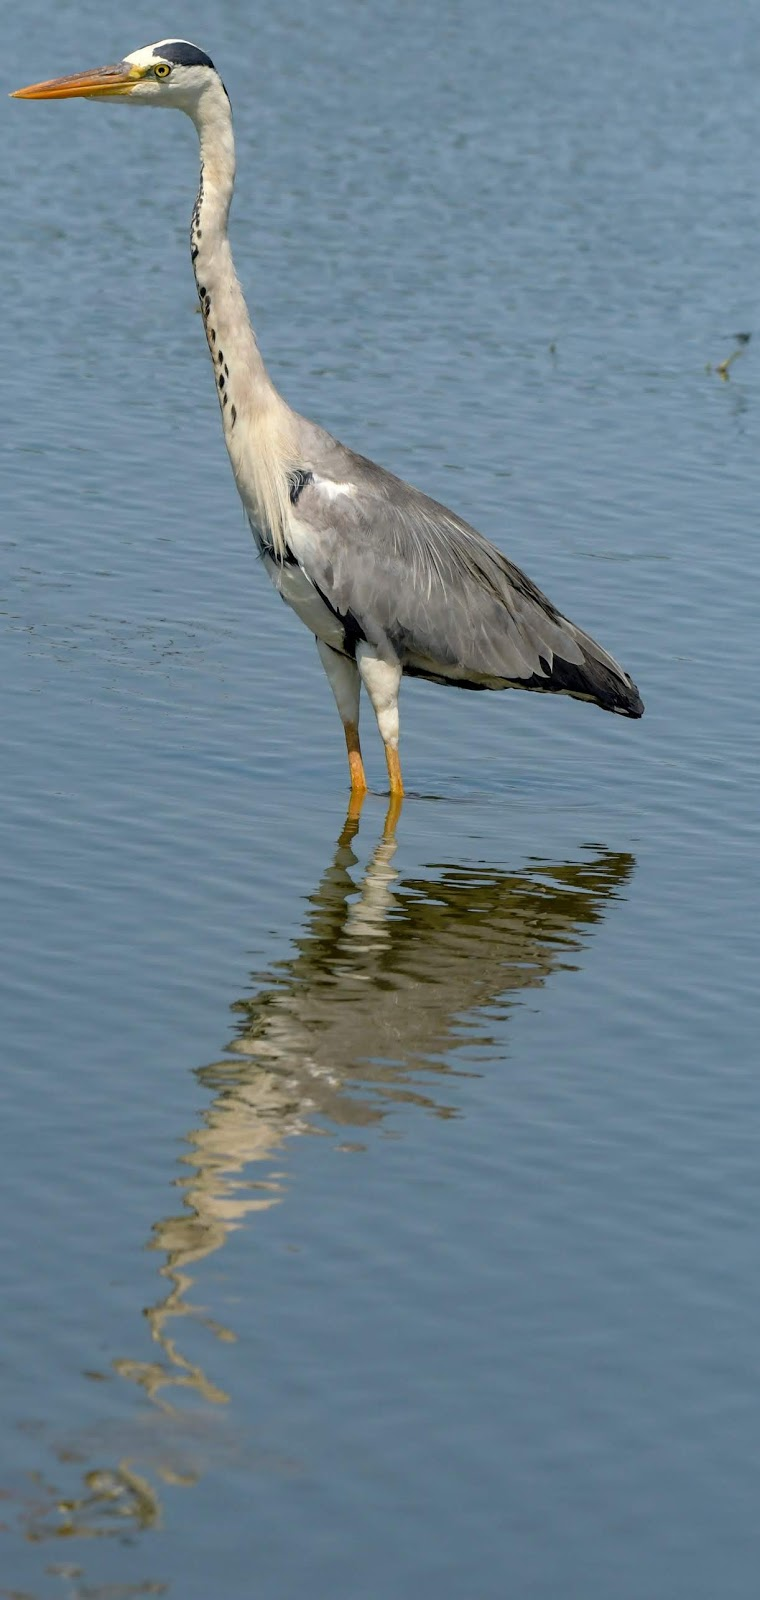 Photo of a heron.